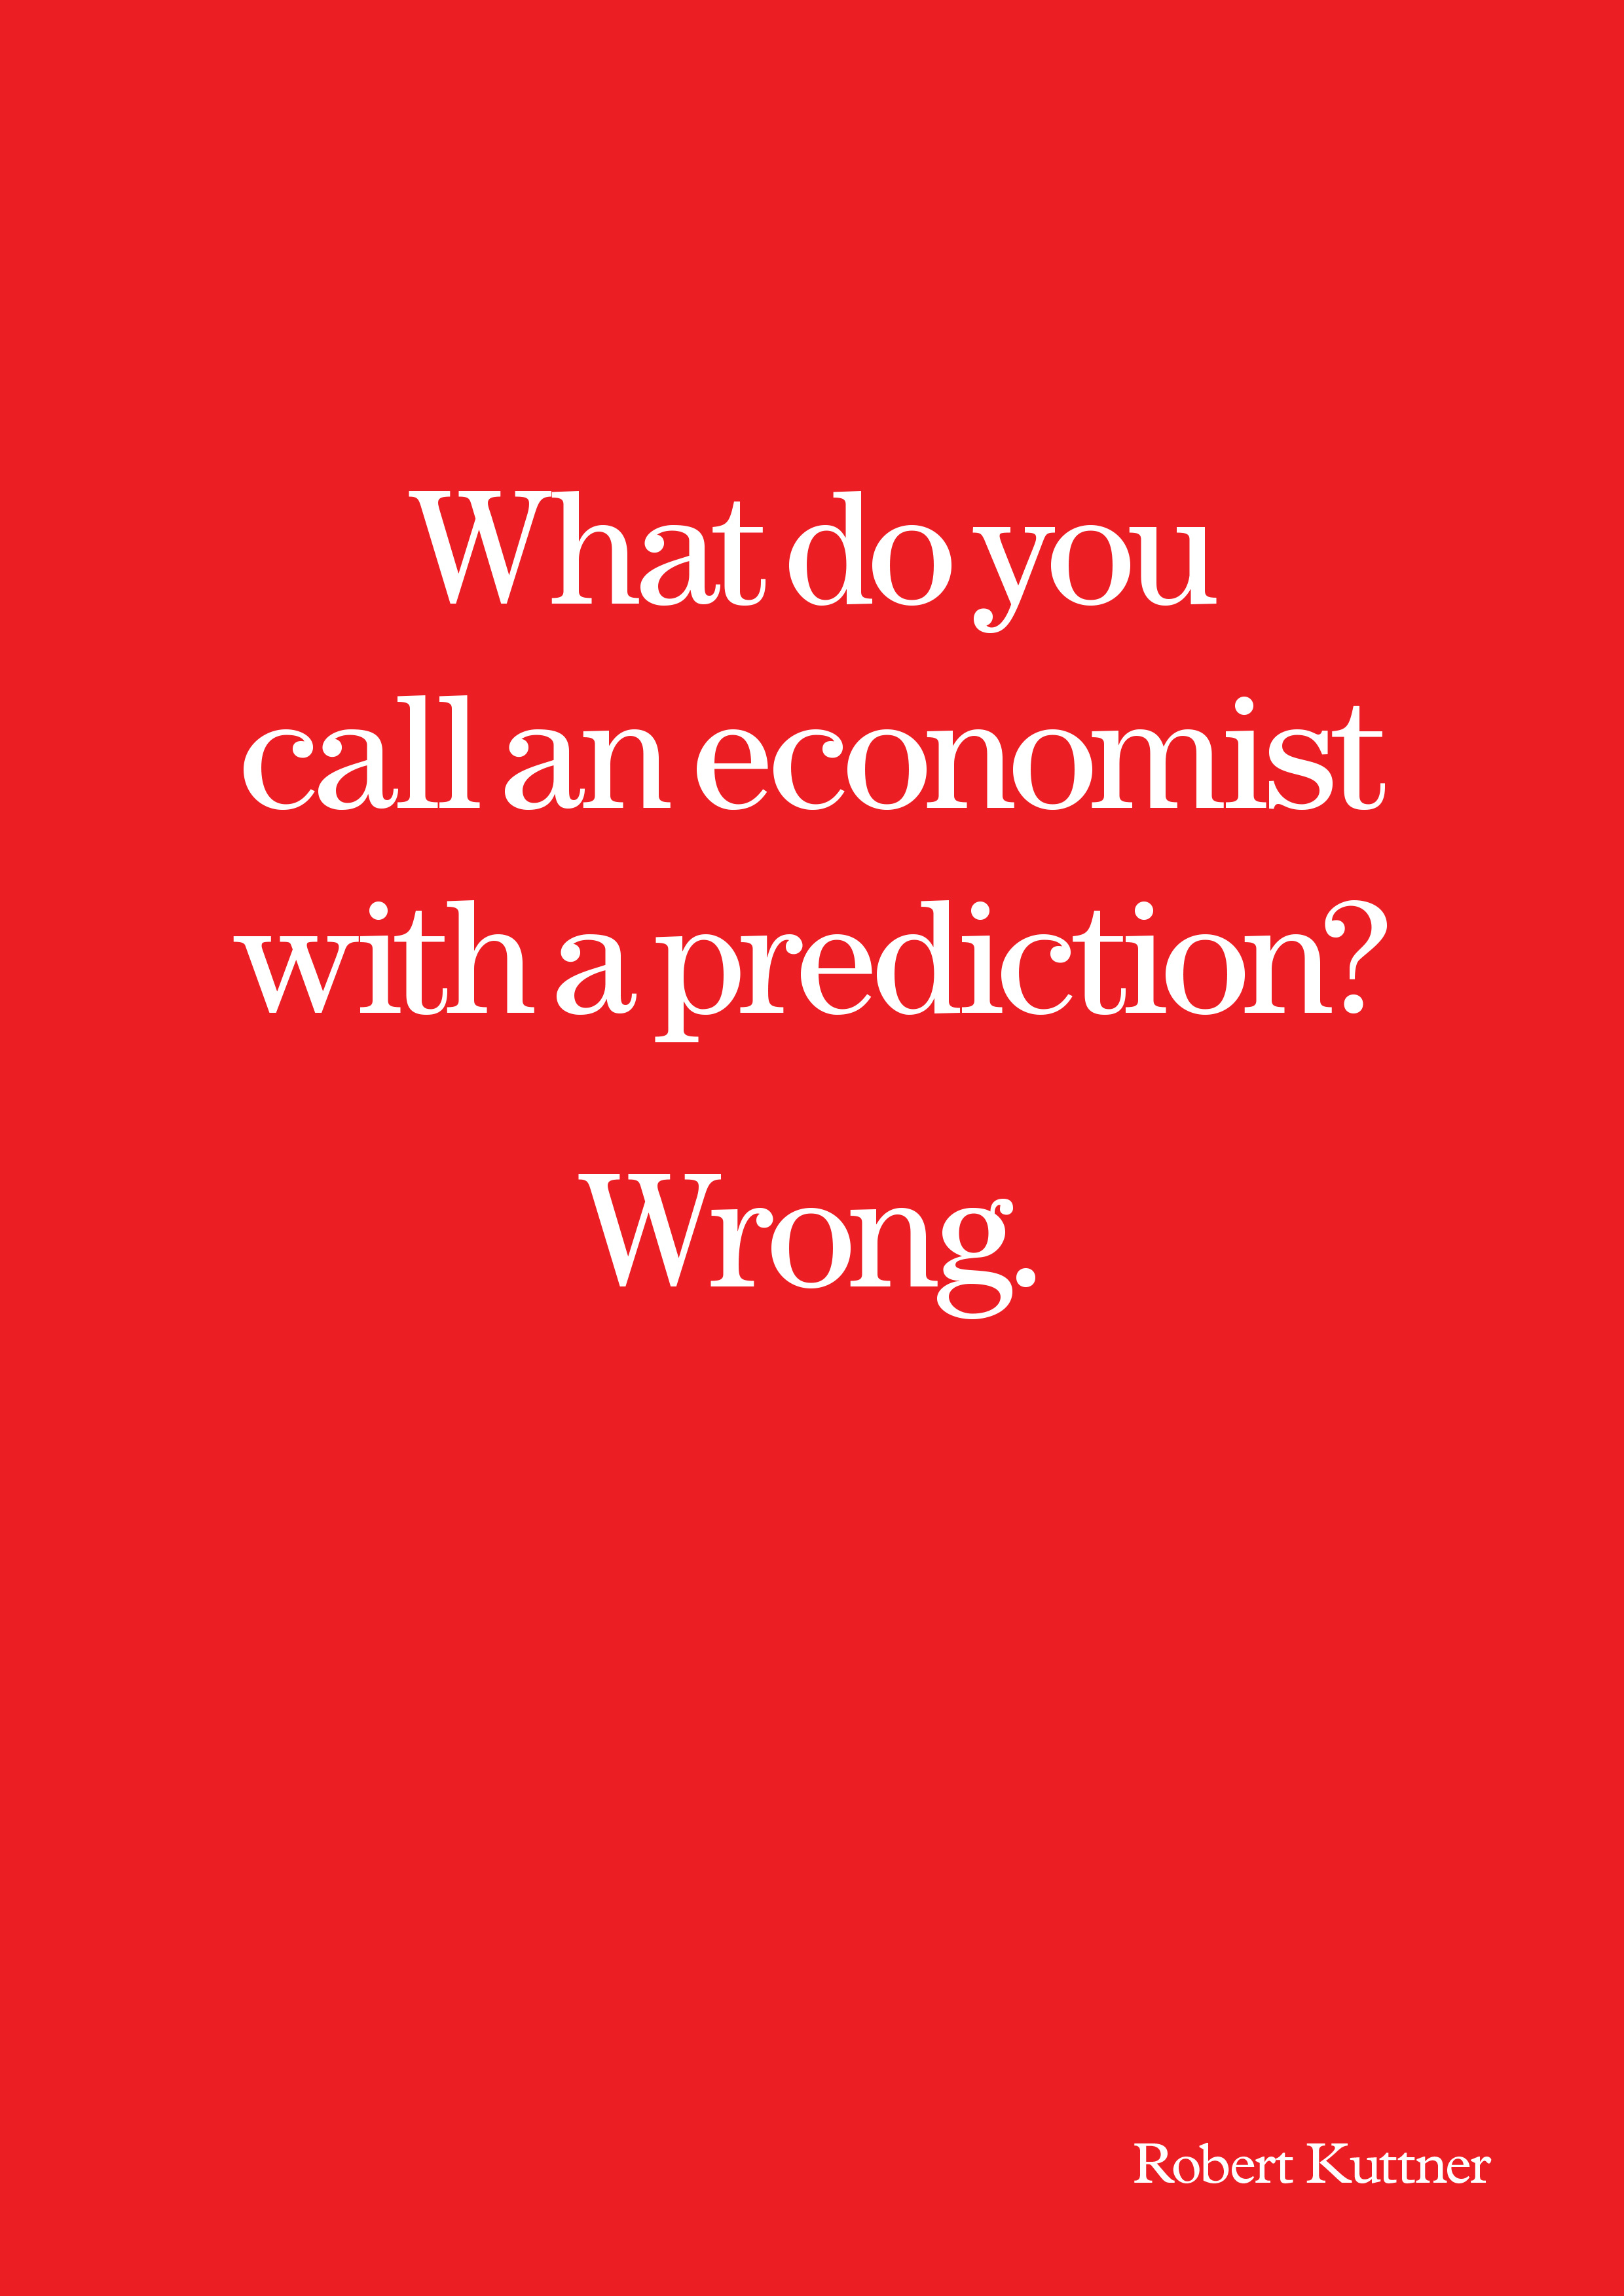 What do you call an economist with a prediction? Wrong. — Robert Kuttner [2480×3507]